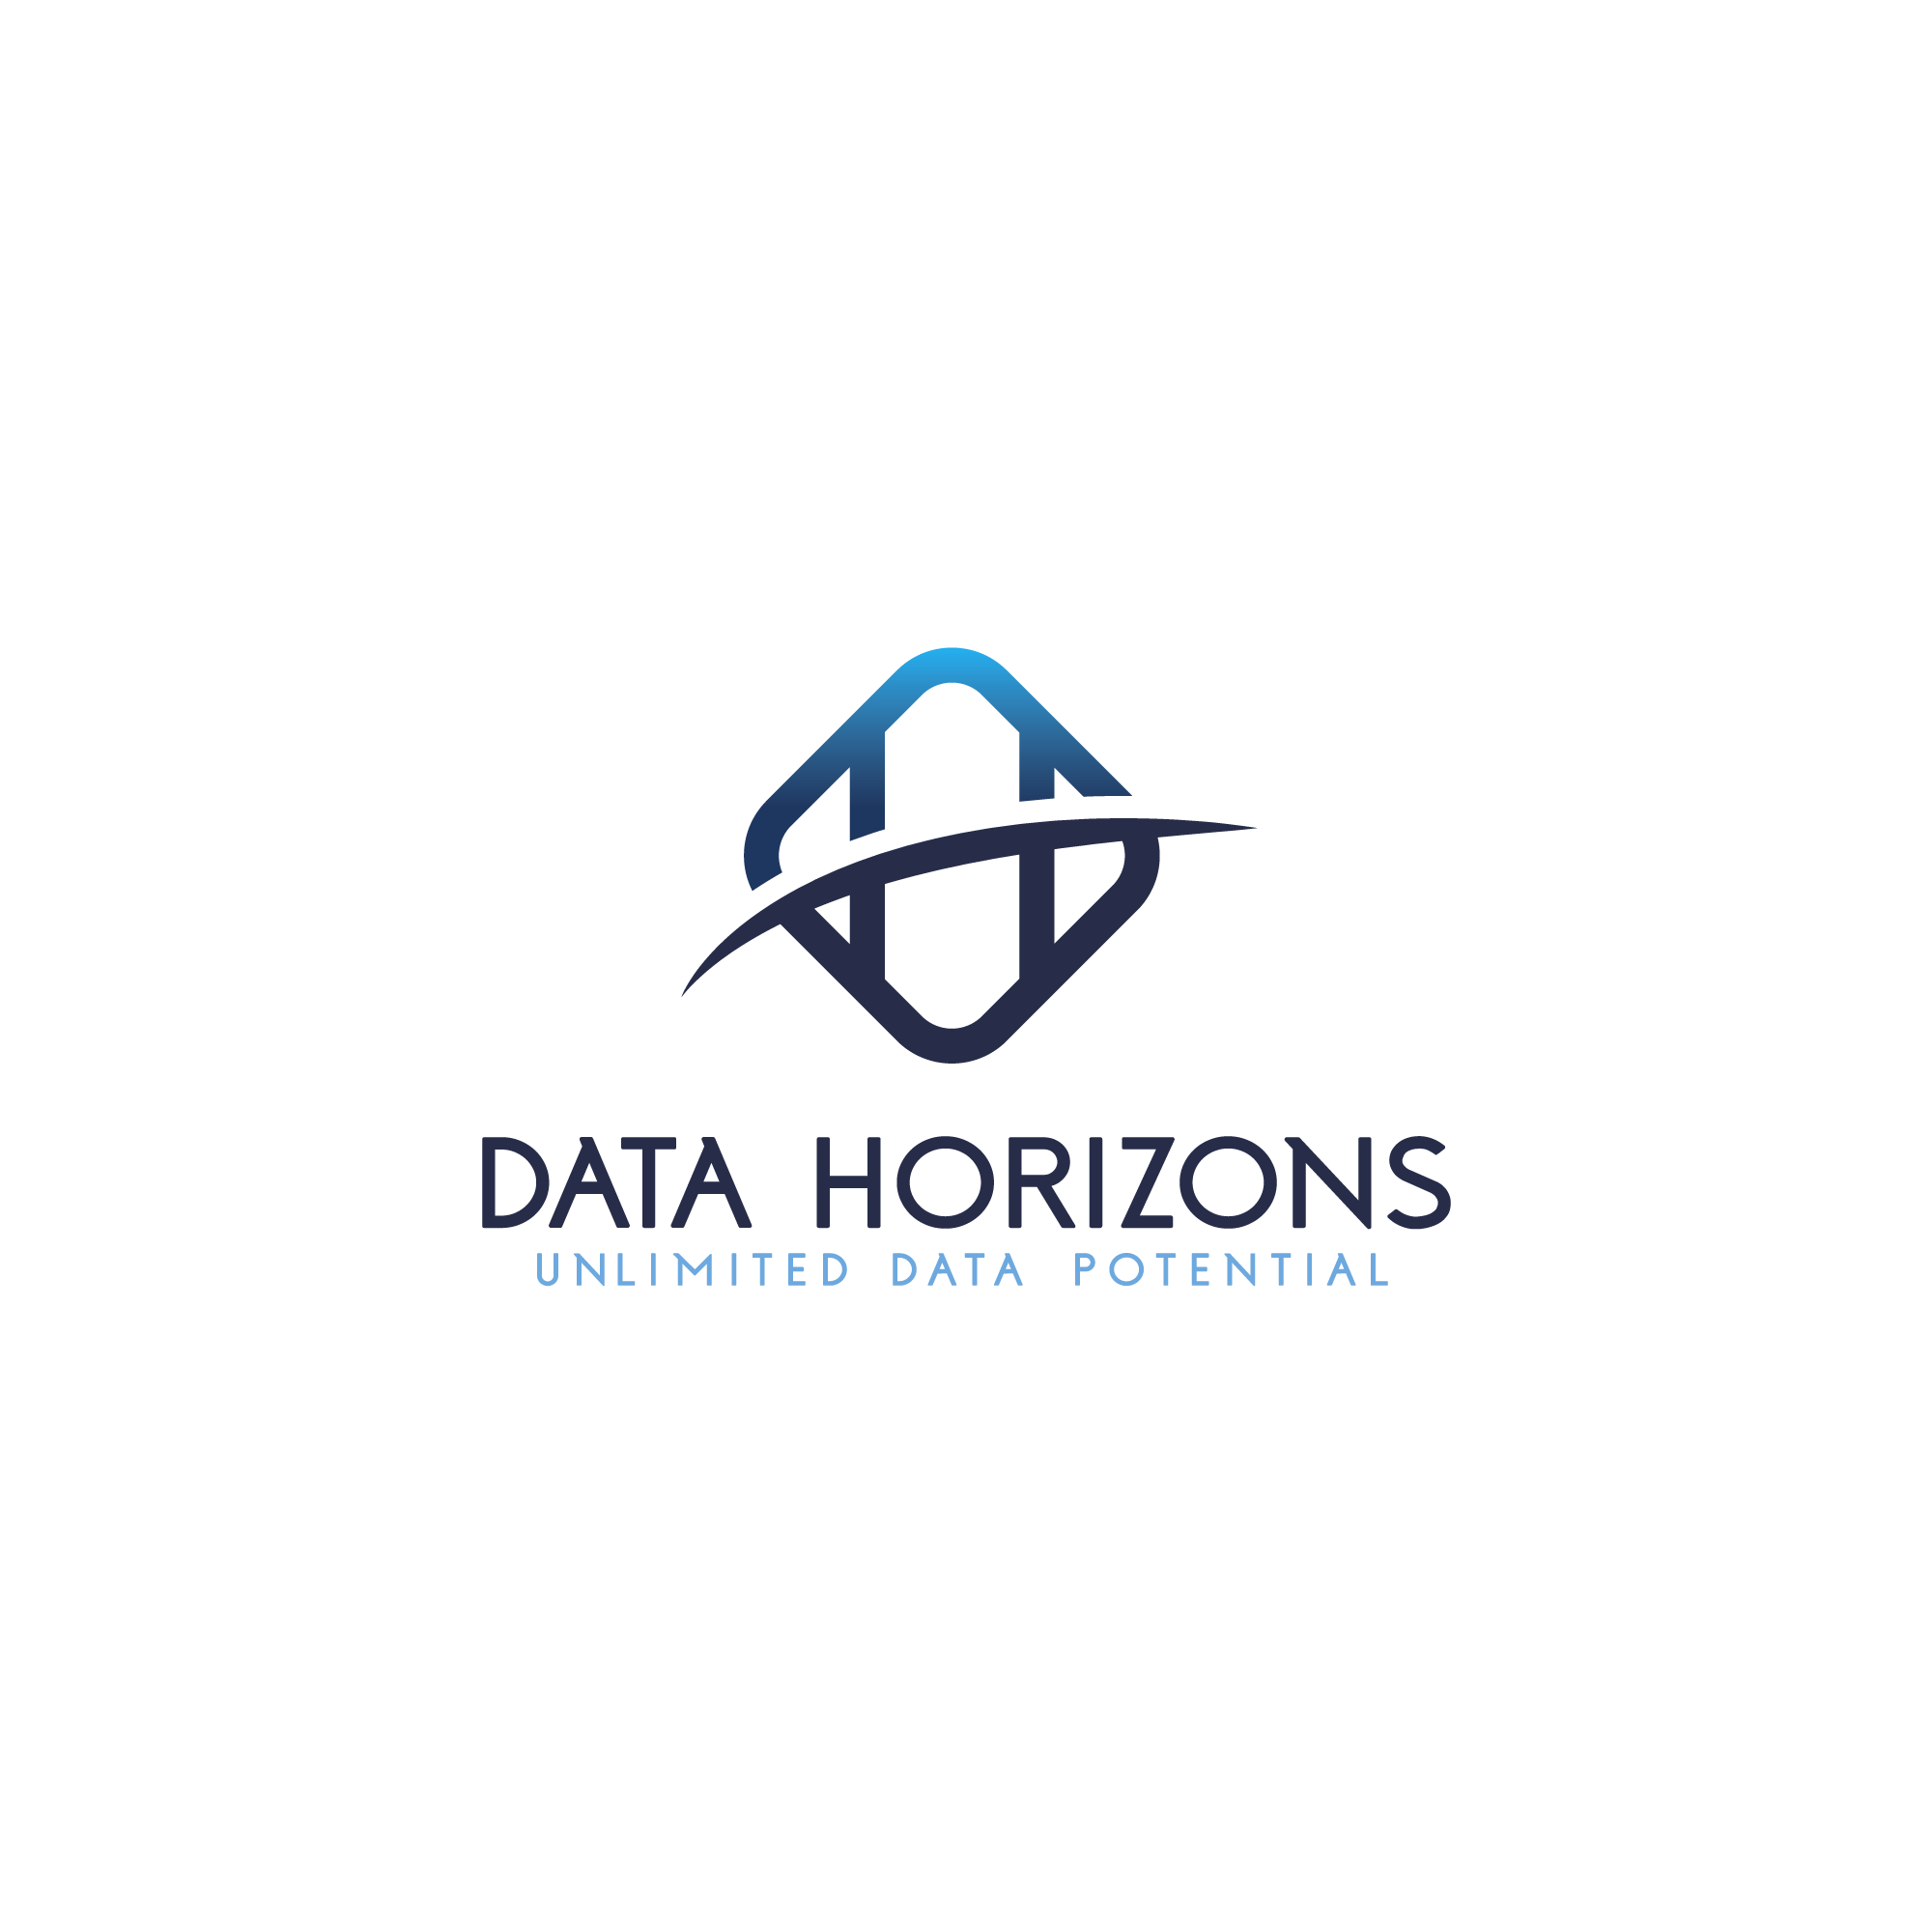 """The Data Horizons """"Unlimited Data Potential"""" logo challenge"""